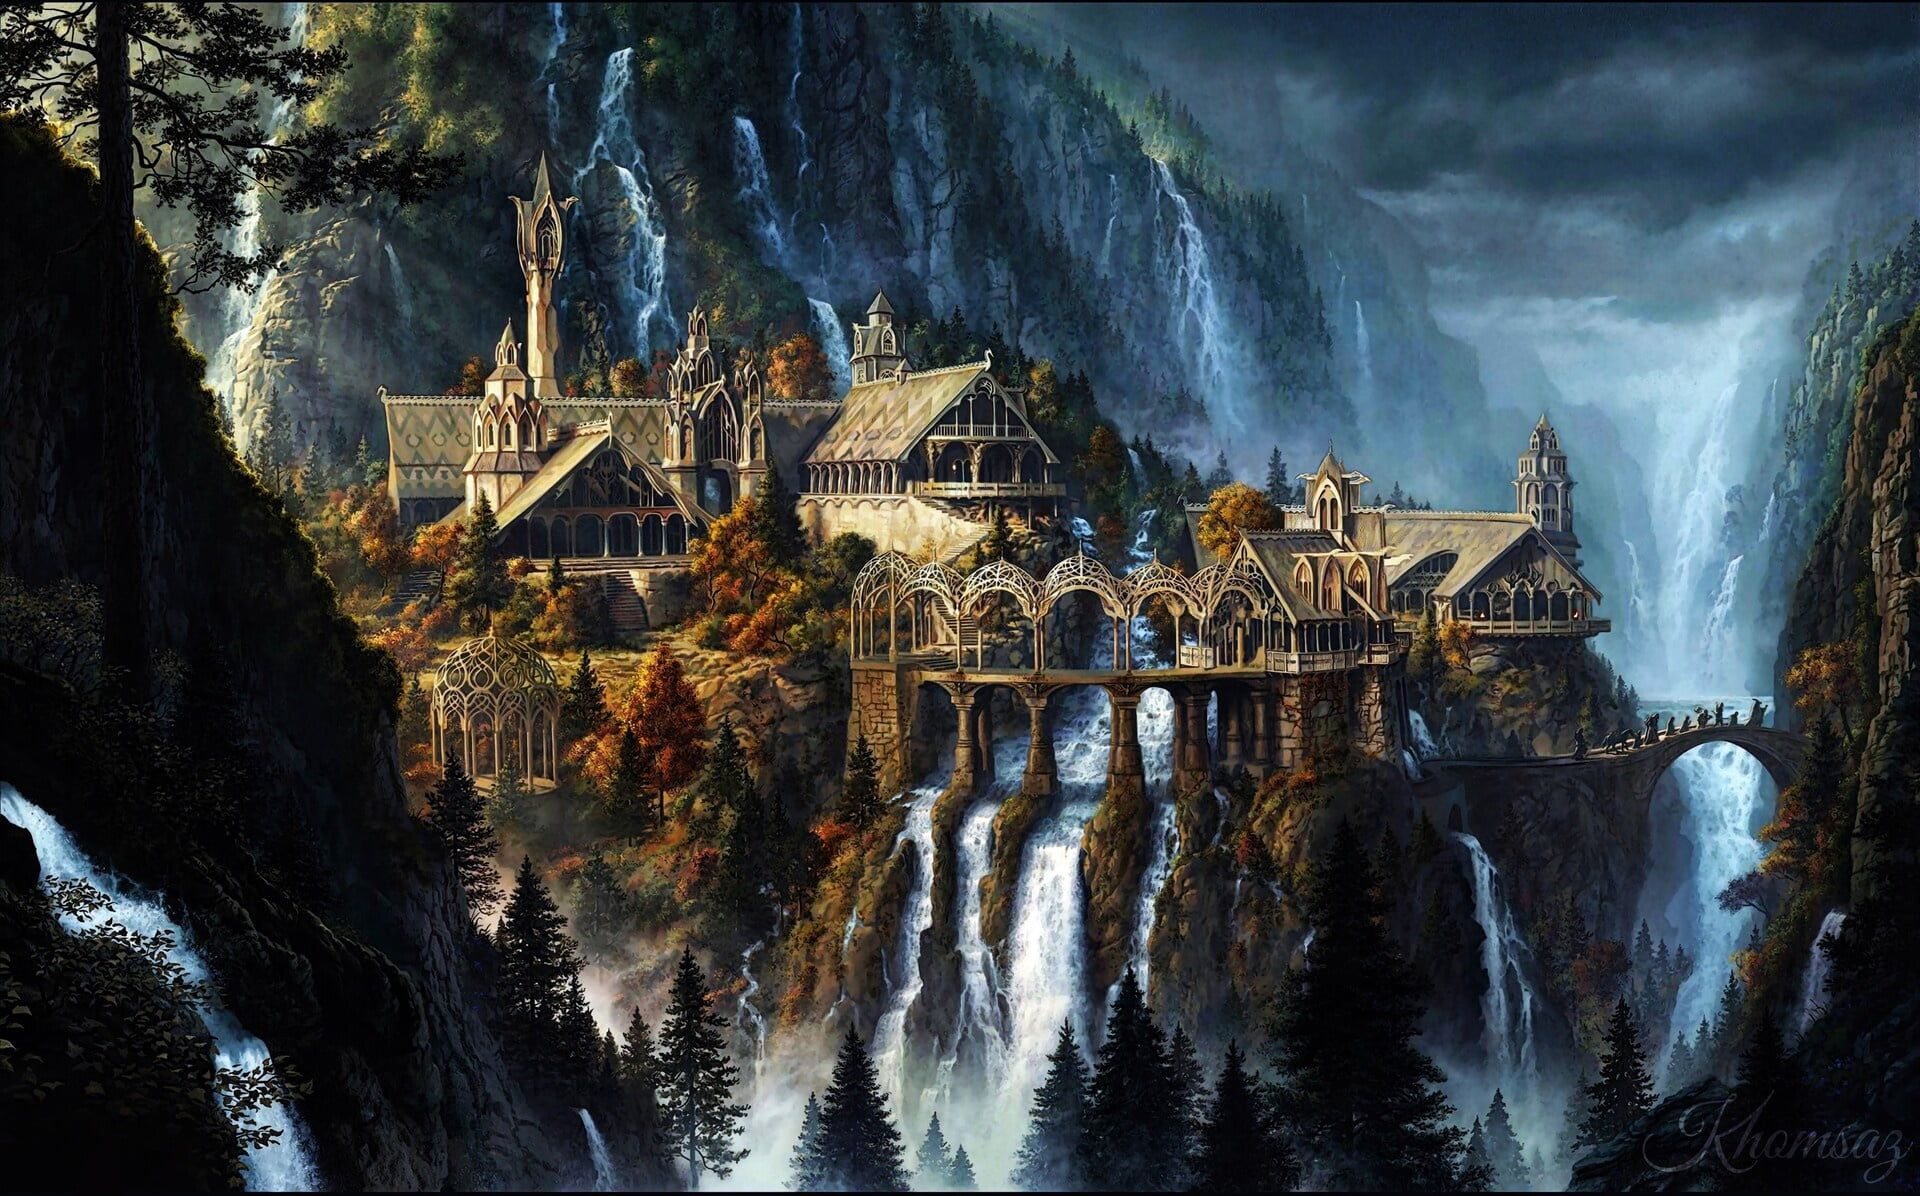 Rivendell The Lord of the Rings fantasy art waterfall